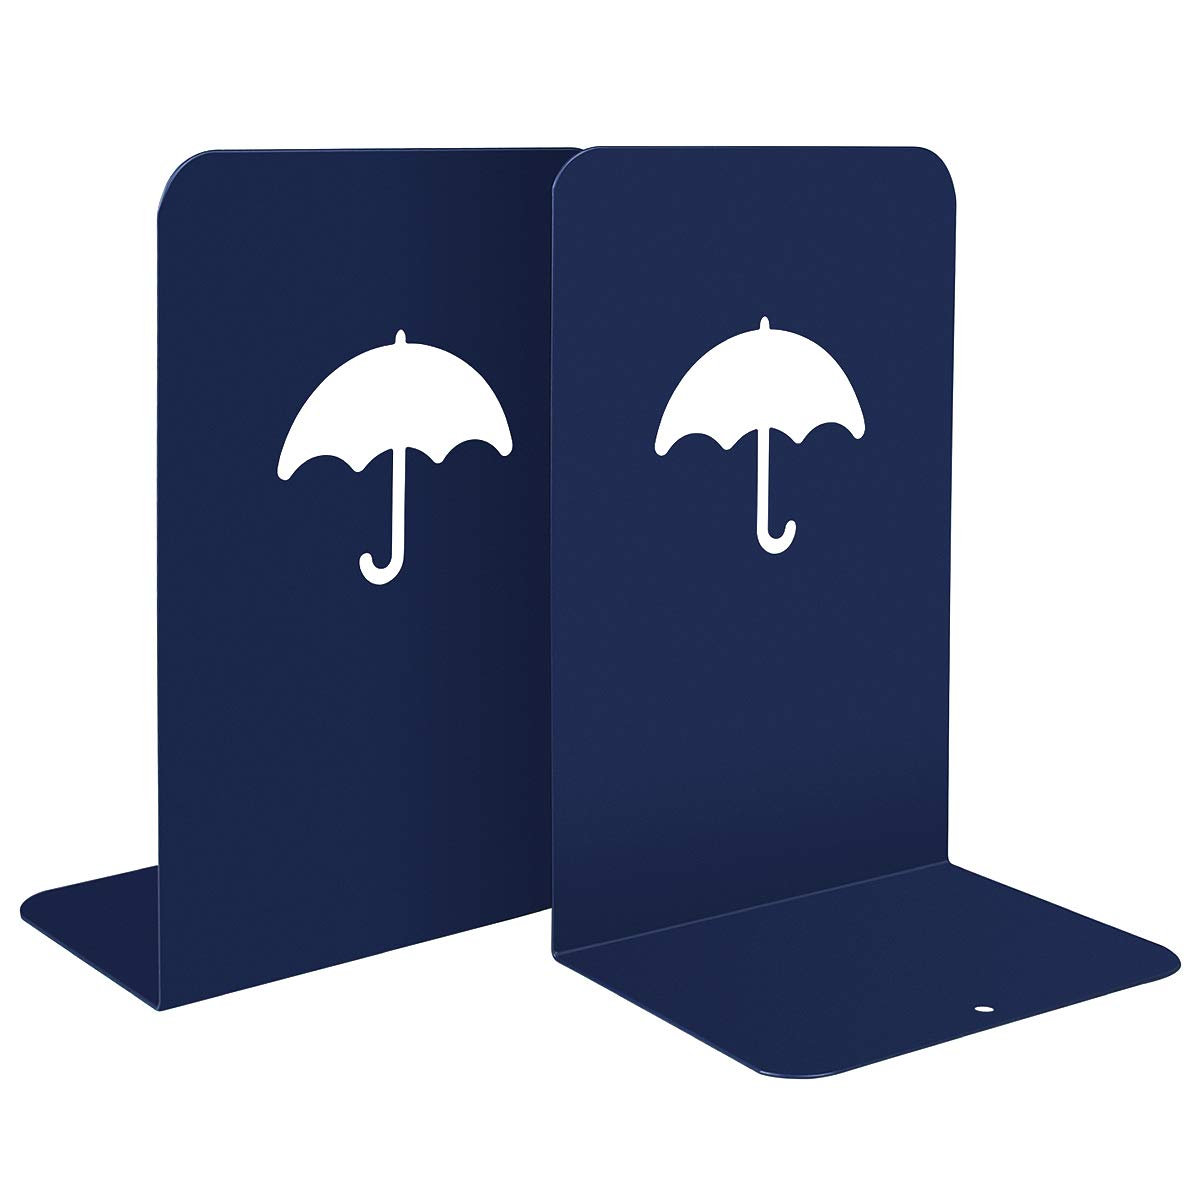 Eliseo Bookends, Non Skid 8 Inch Heavy Duty Metal Tall Book Ends Supports with Hollowed-Out Umbrella for Shelves Desk Office School, Great for Heavey Books, Children Books, Magazines (Matte Blue)